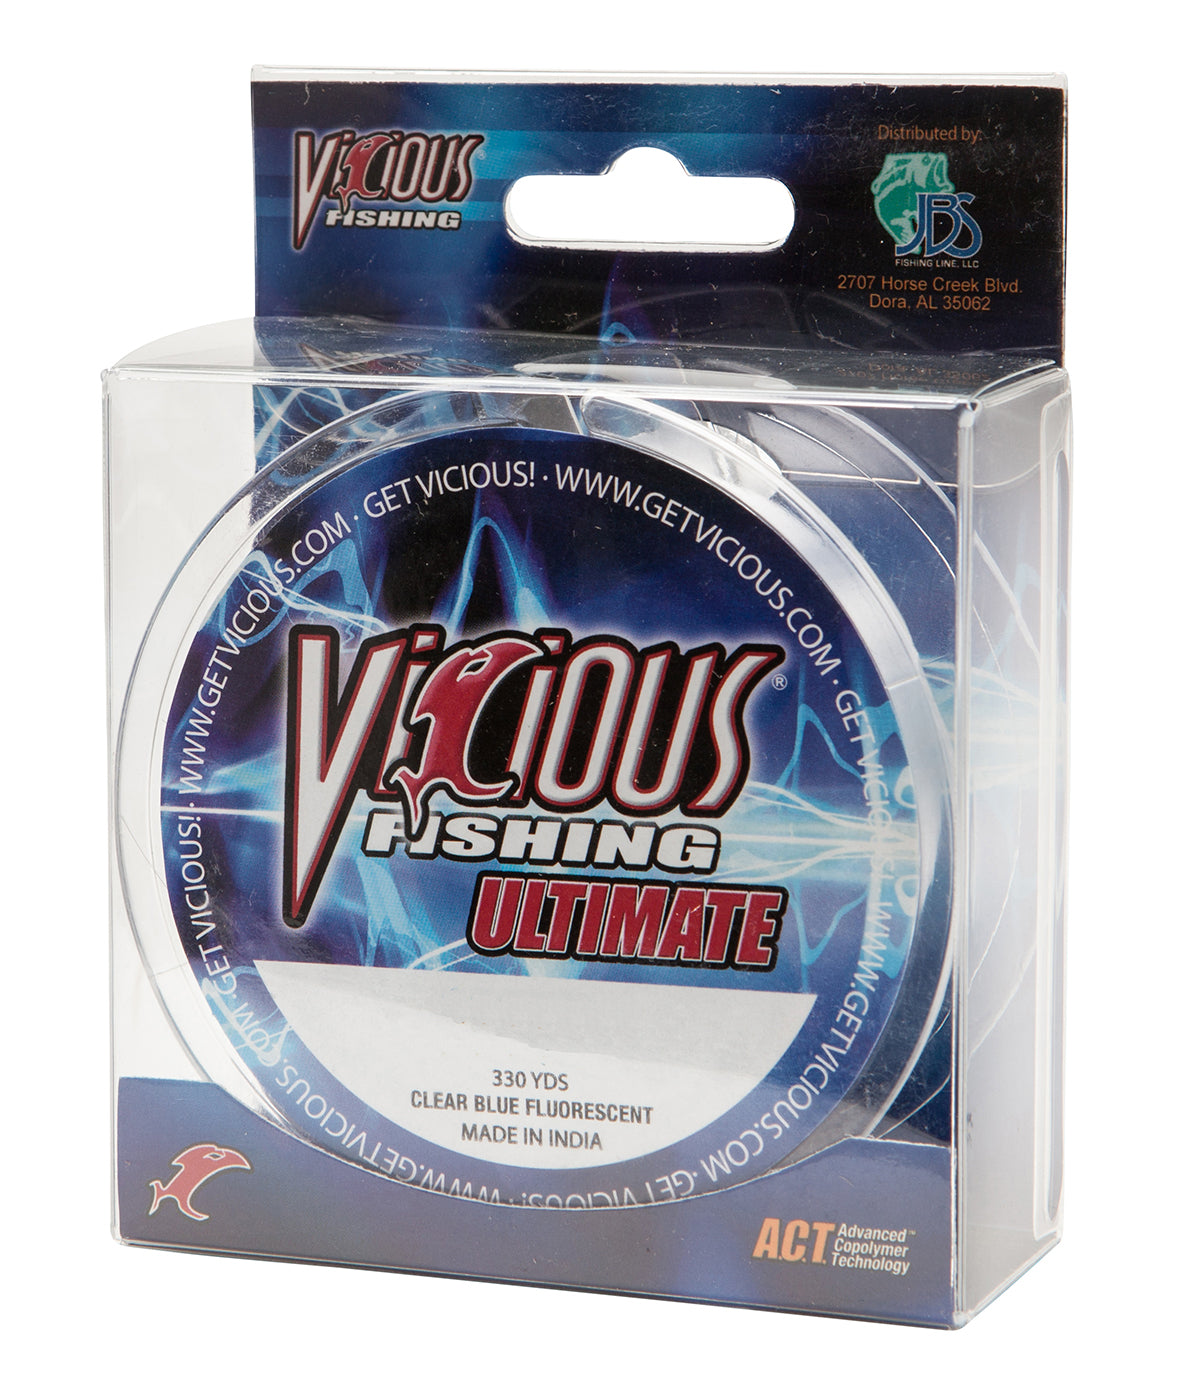 8lb Vicious Clear Blue Ultimate - 330 Yards